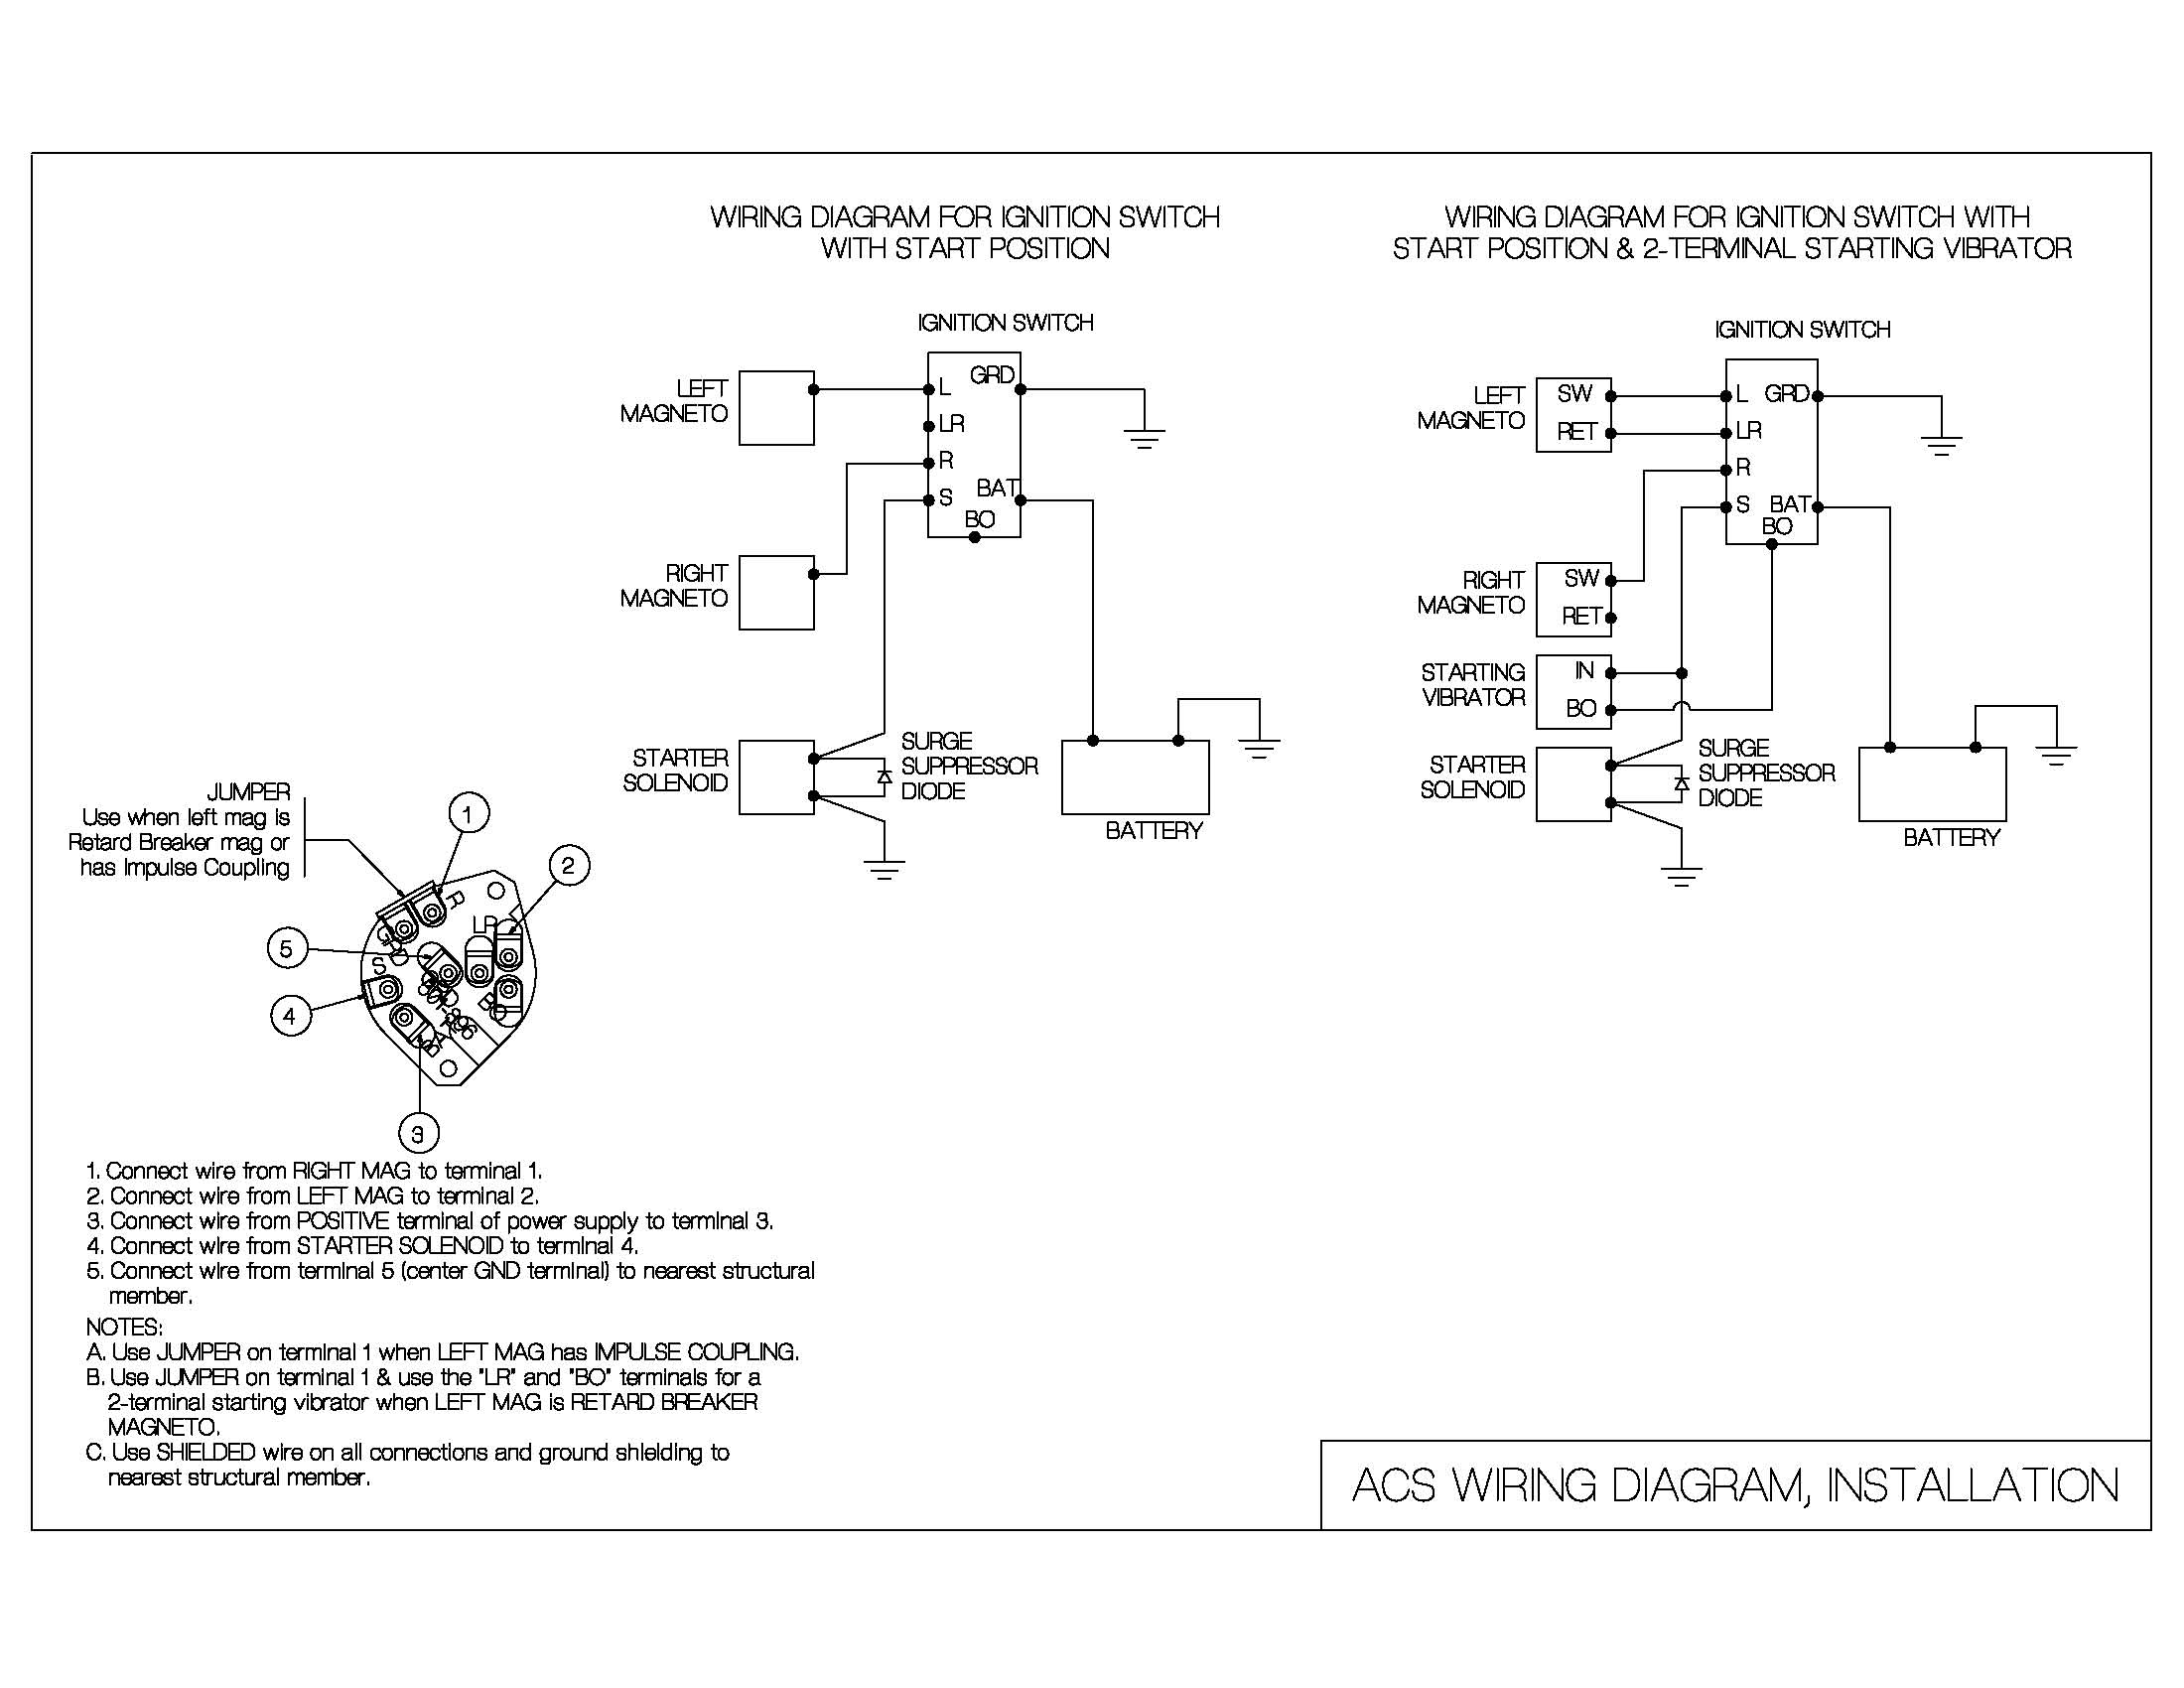 Wiring Diagram ignition switch wiring diagram acs products company ignition switch wiring diagram at gsmx.co